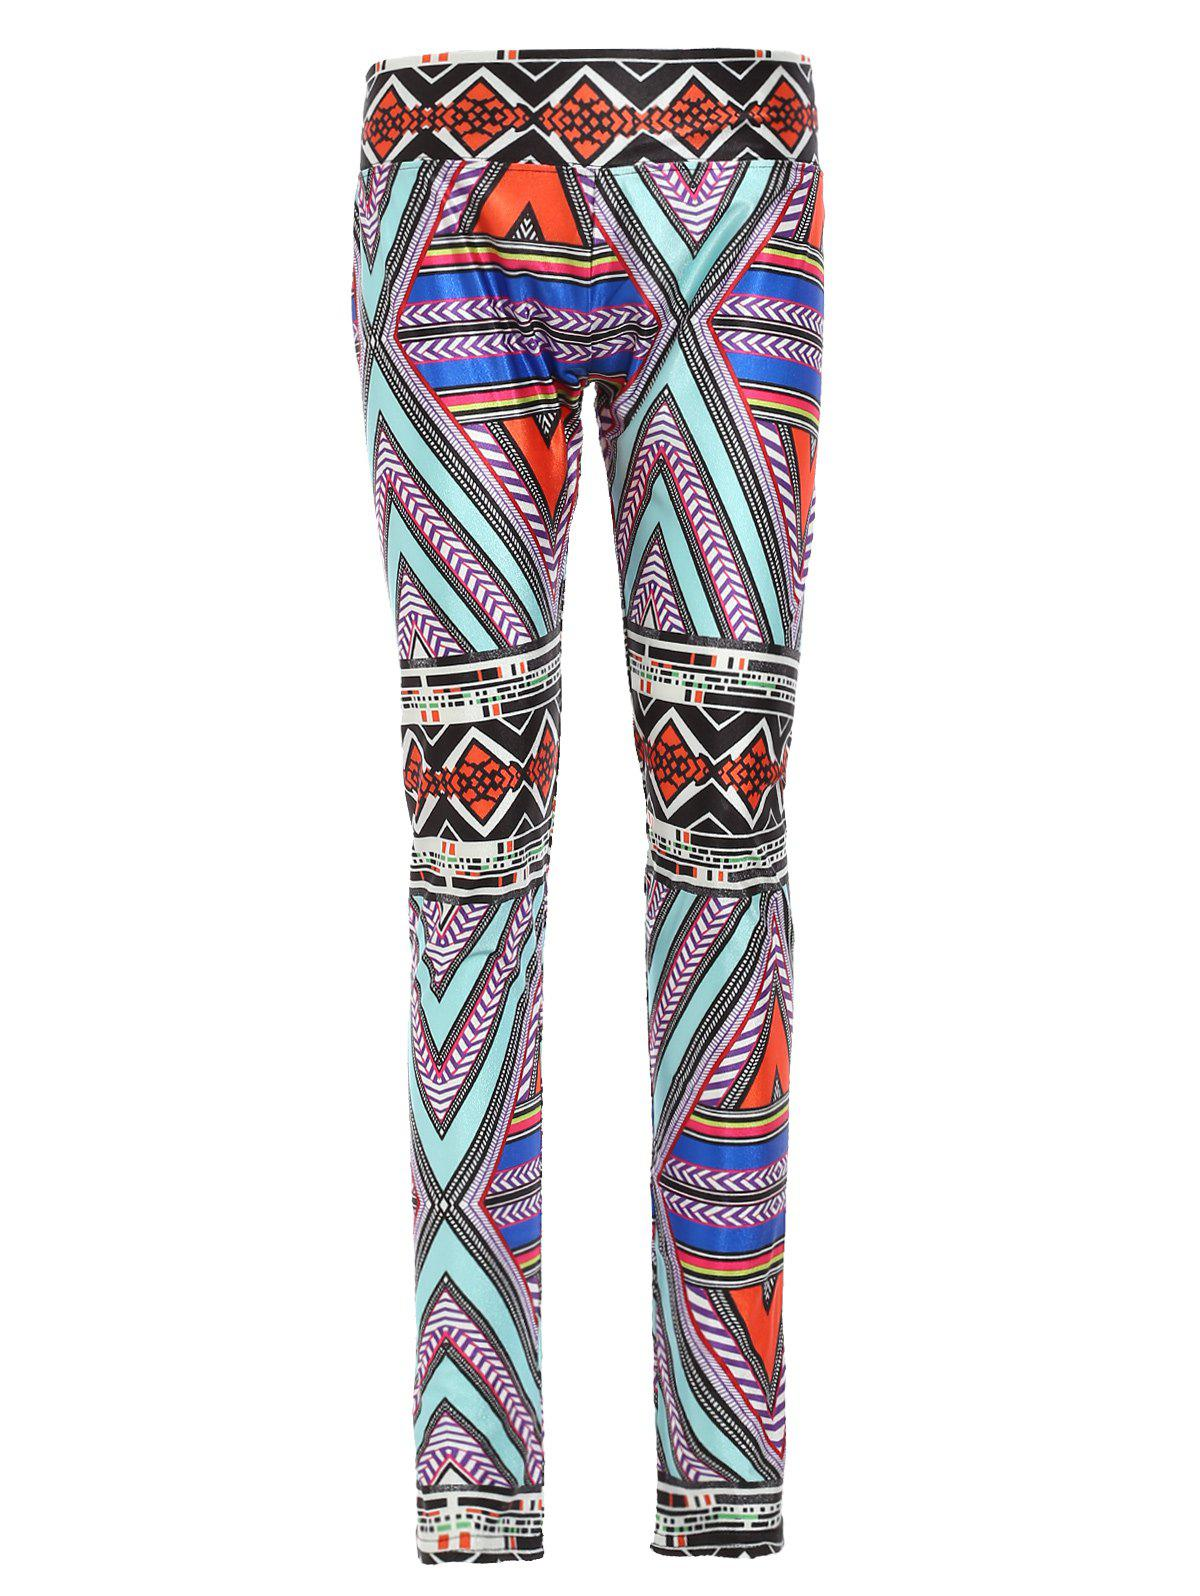 Chic Colorful Geometrical Print Elastic Waist Sport Leggings For Women - COLORMIX M